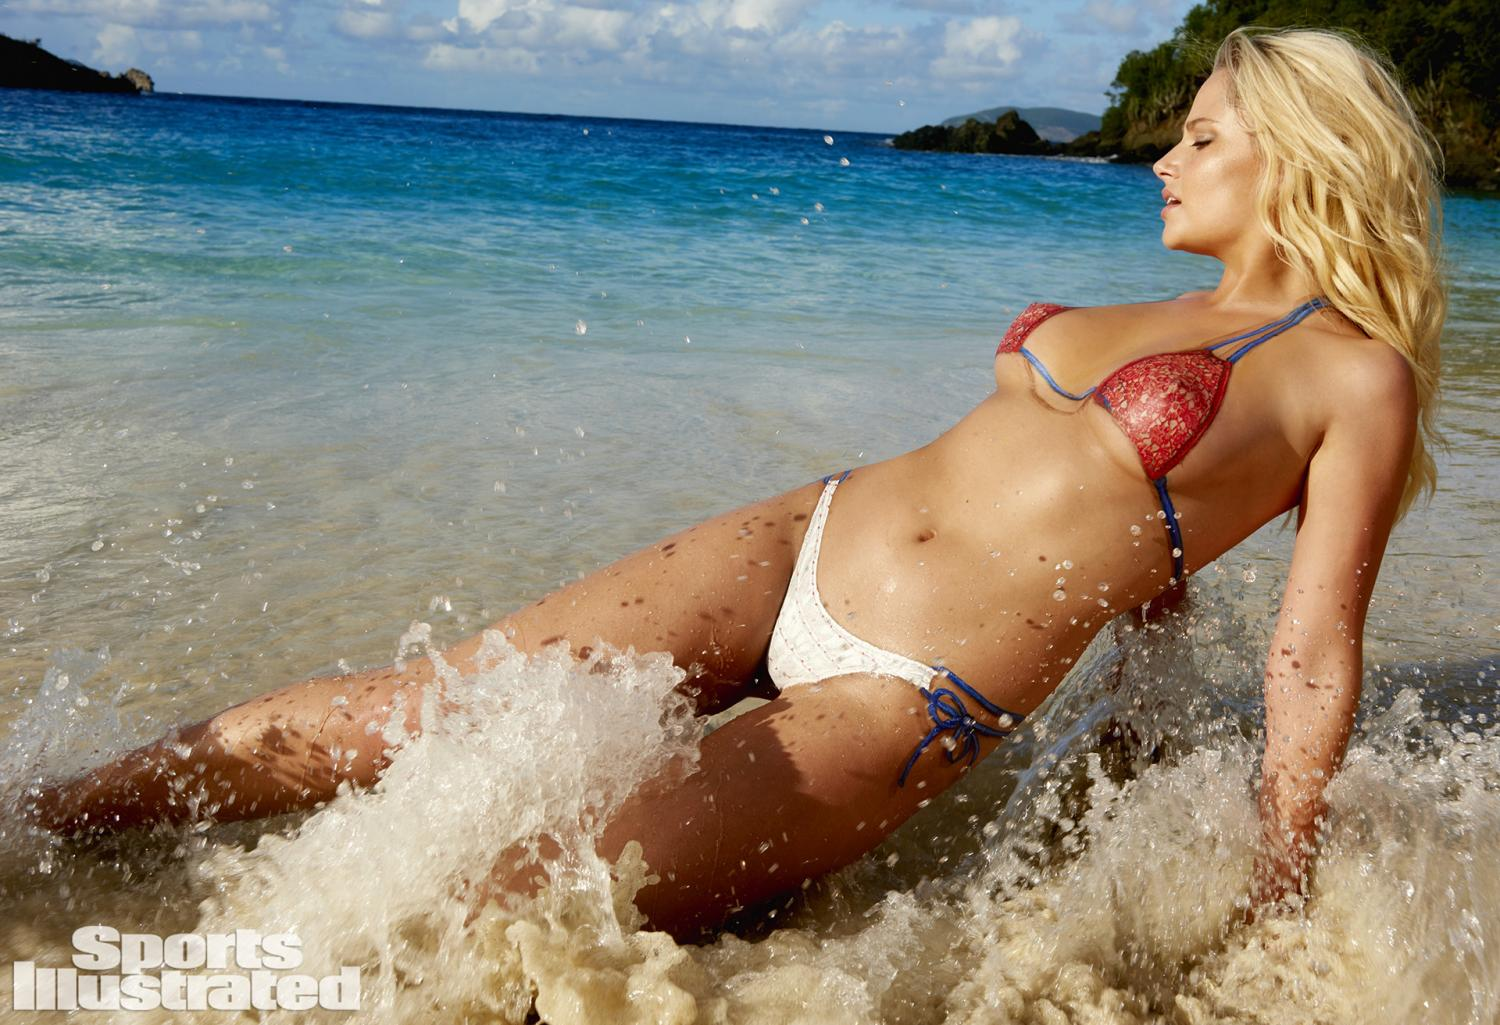 Genevieve Morton Swimsuit Body Paint Photos, Sports Illustrated ...